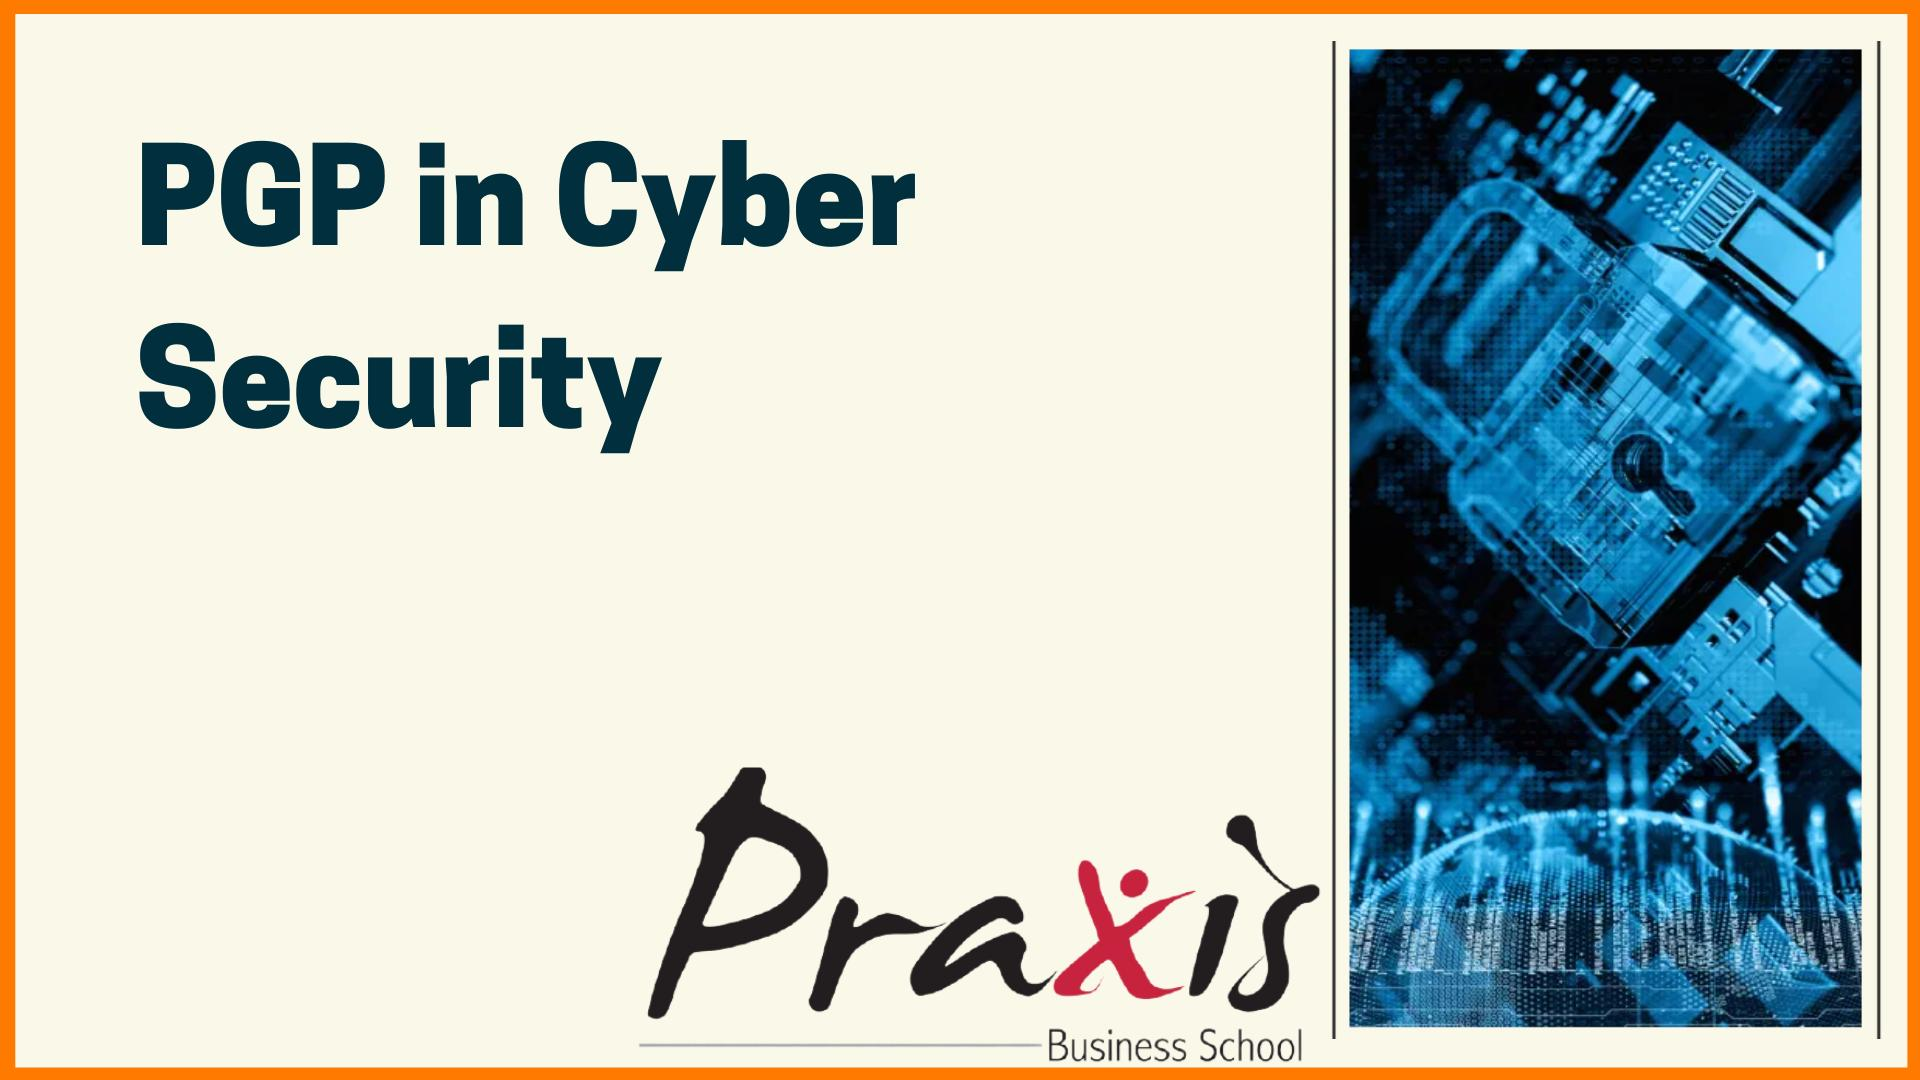 PGP in Cyber Security - Top cybersecurity course